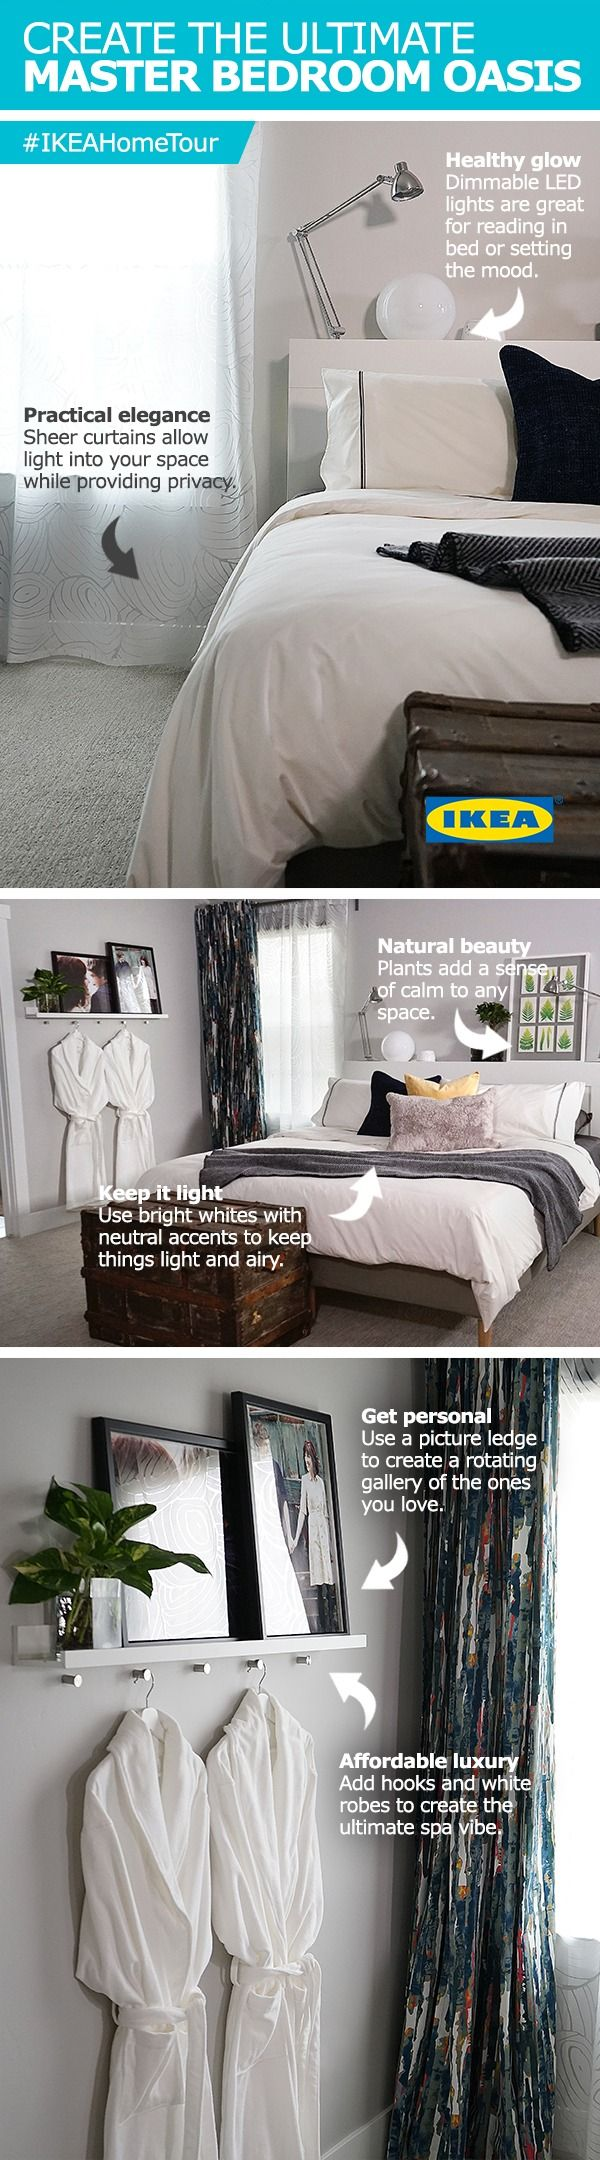 Get Inspiration From The IKEA Home Tour Squads Latest Bedroom Makeover With Tips And Tricks For Creating A Master Oasis Squad Suggests Using